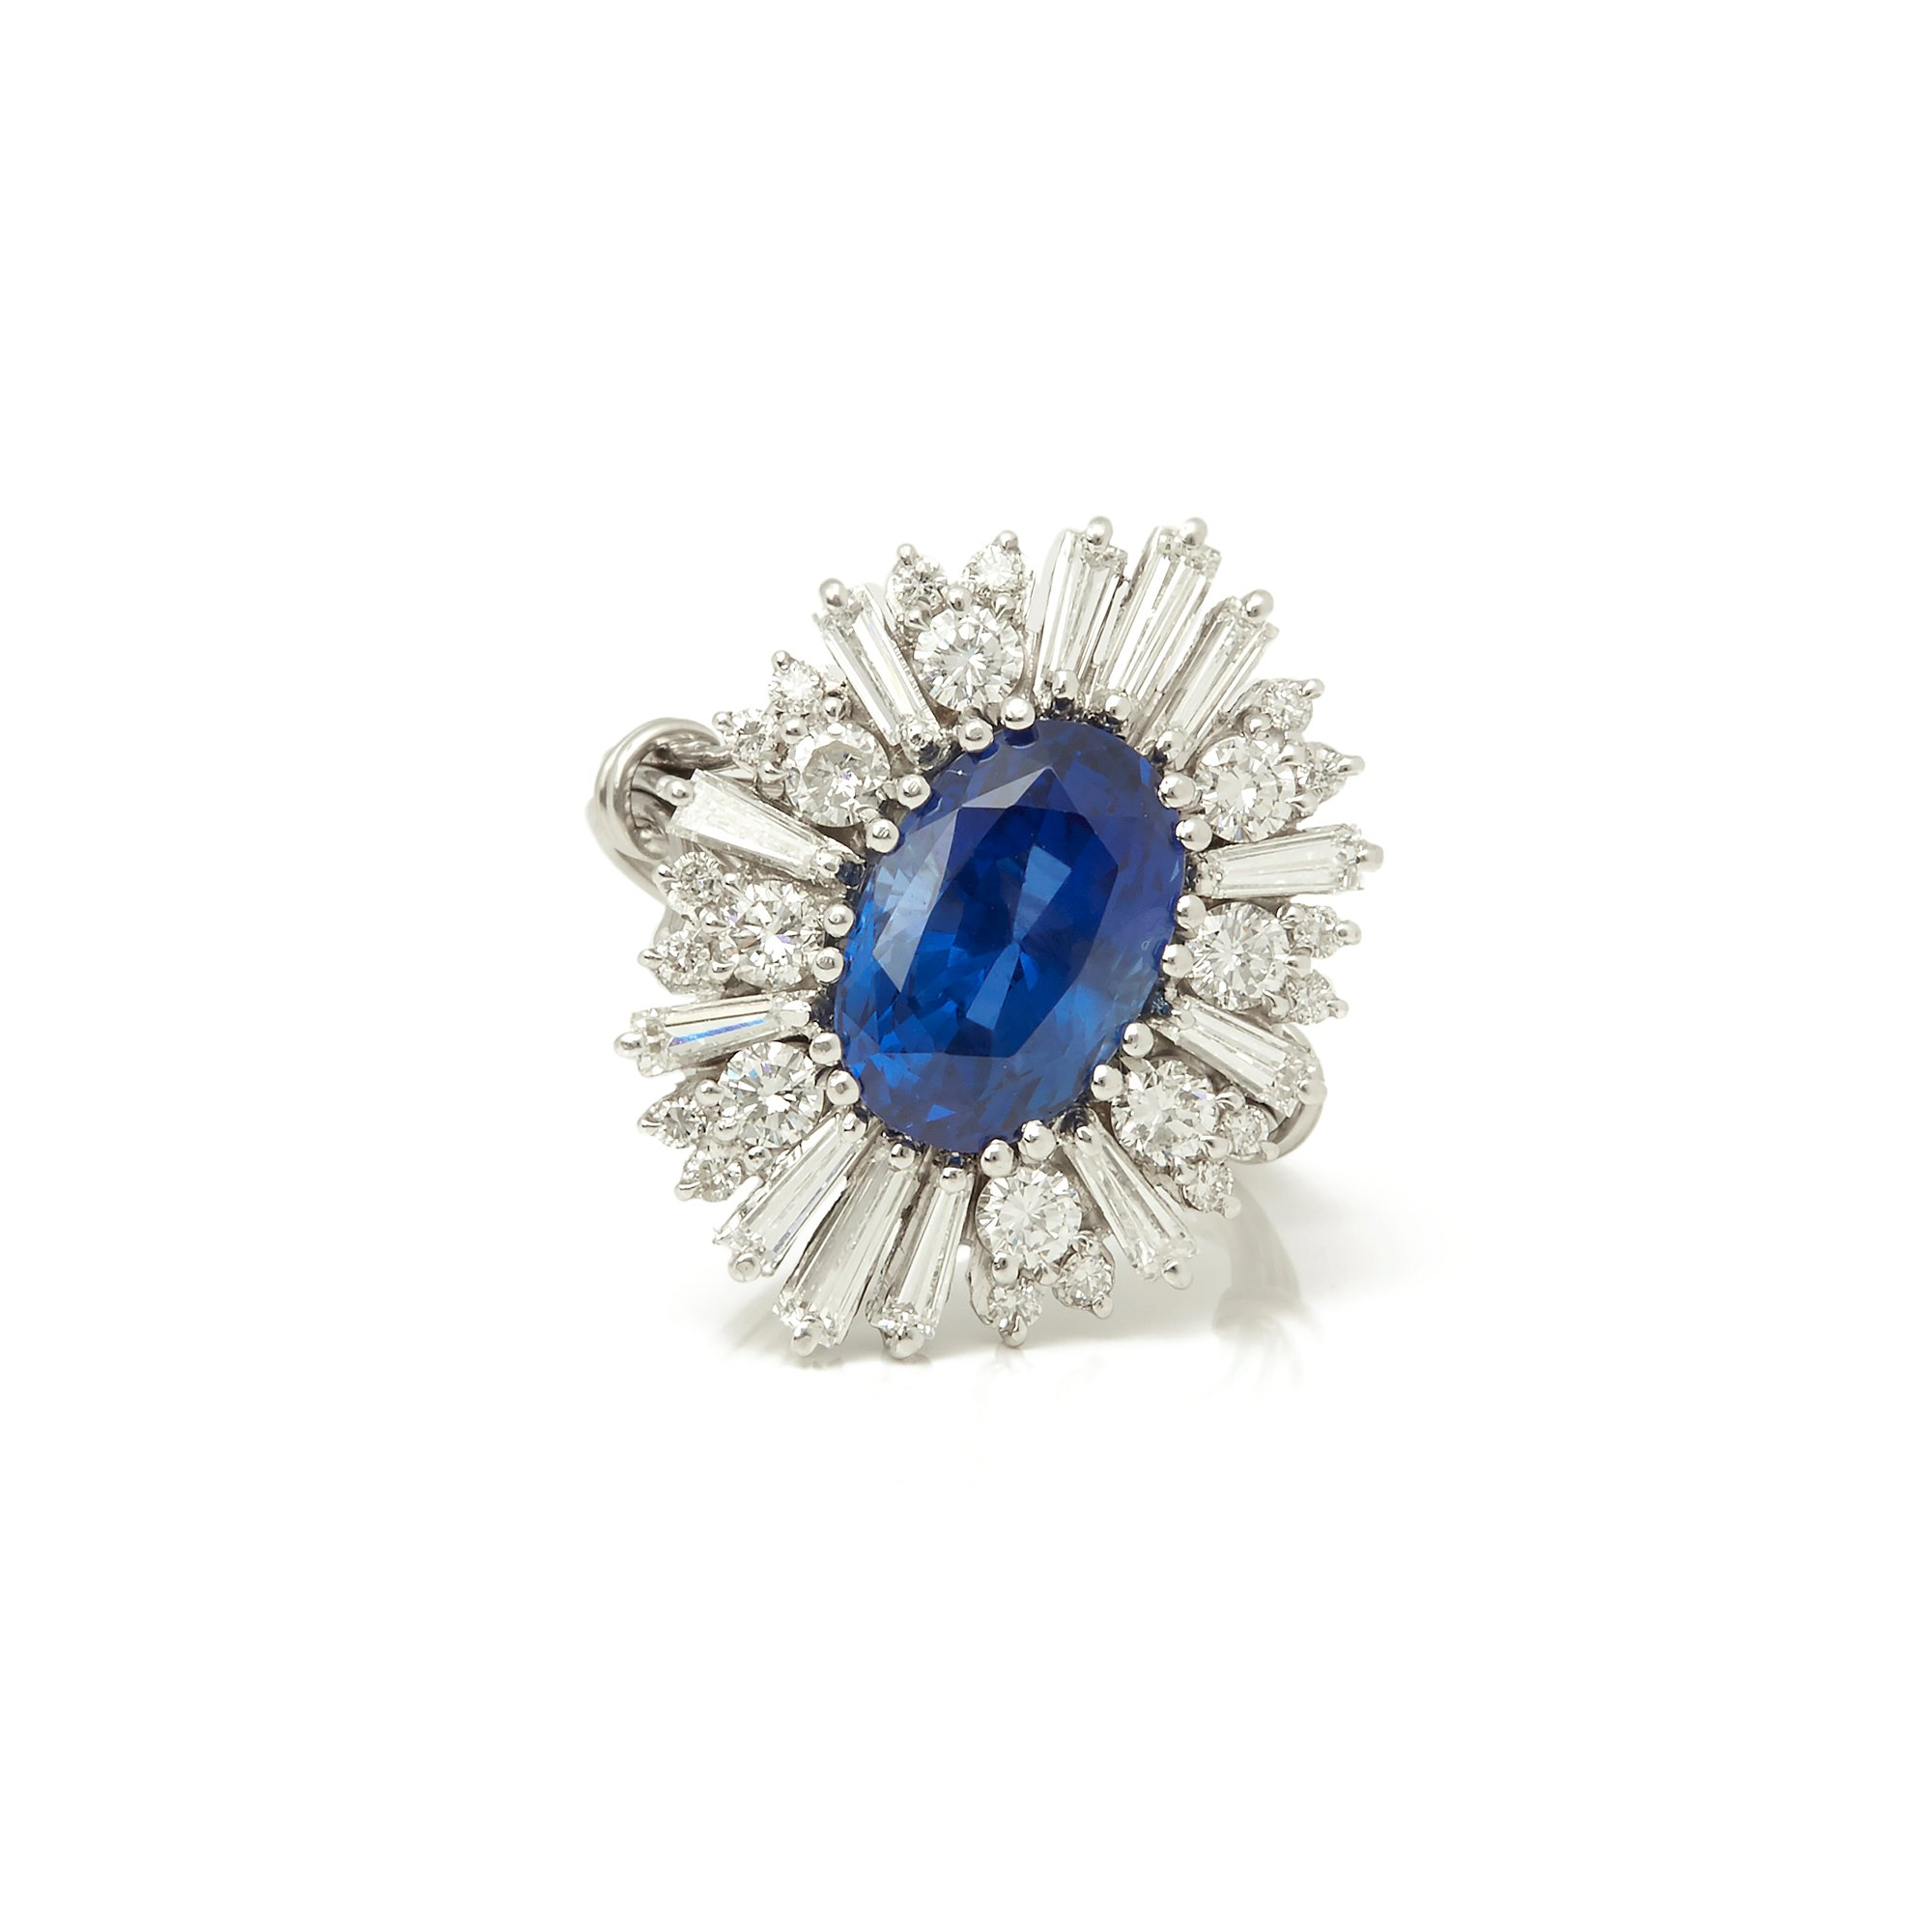 Saffier 18k White Gold Burmese Sapphire & Diamond Cocktail Ring